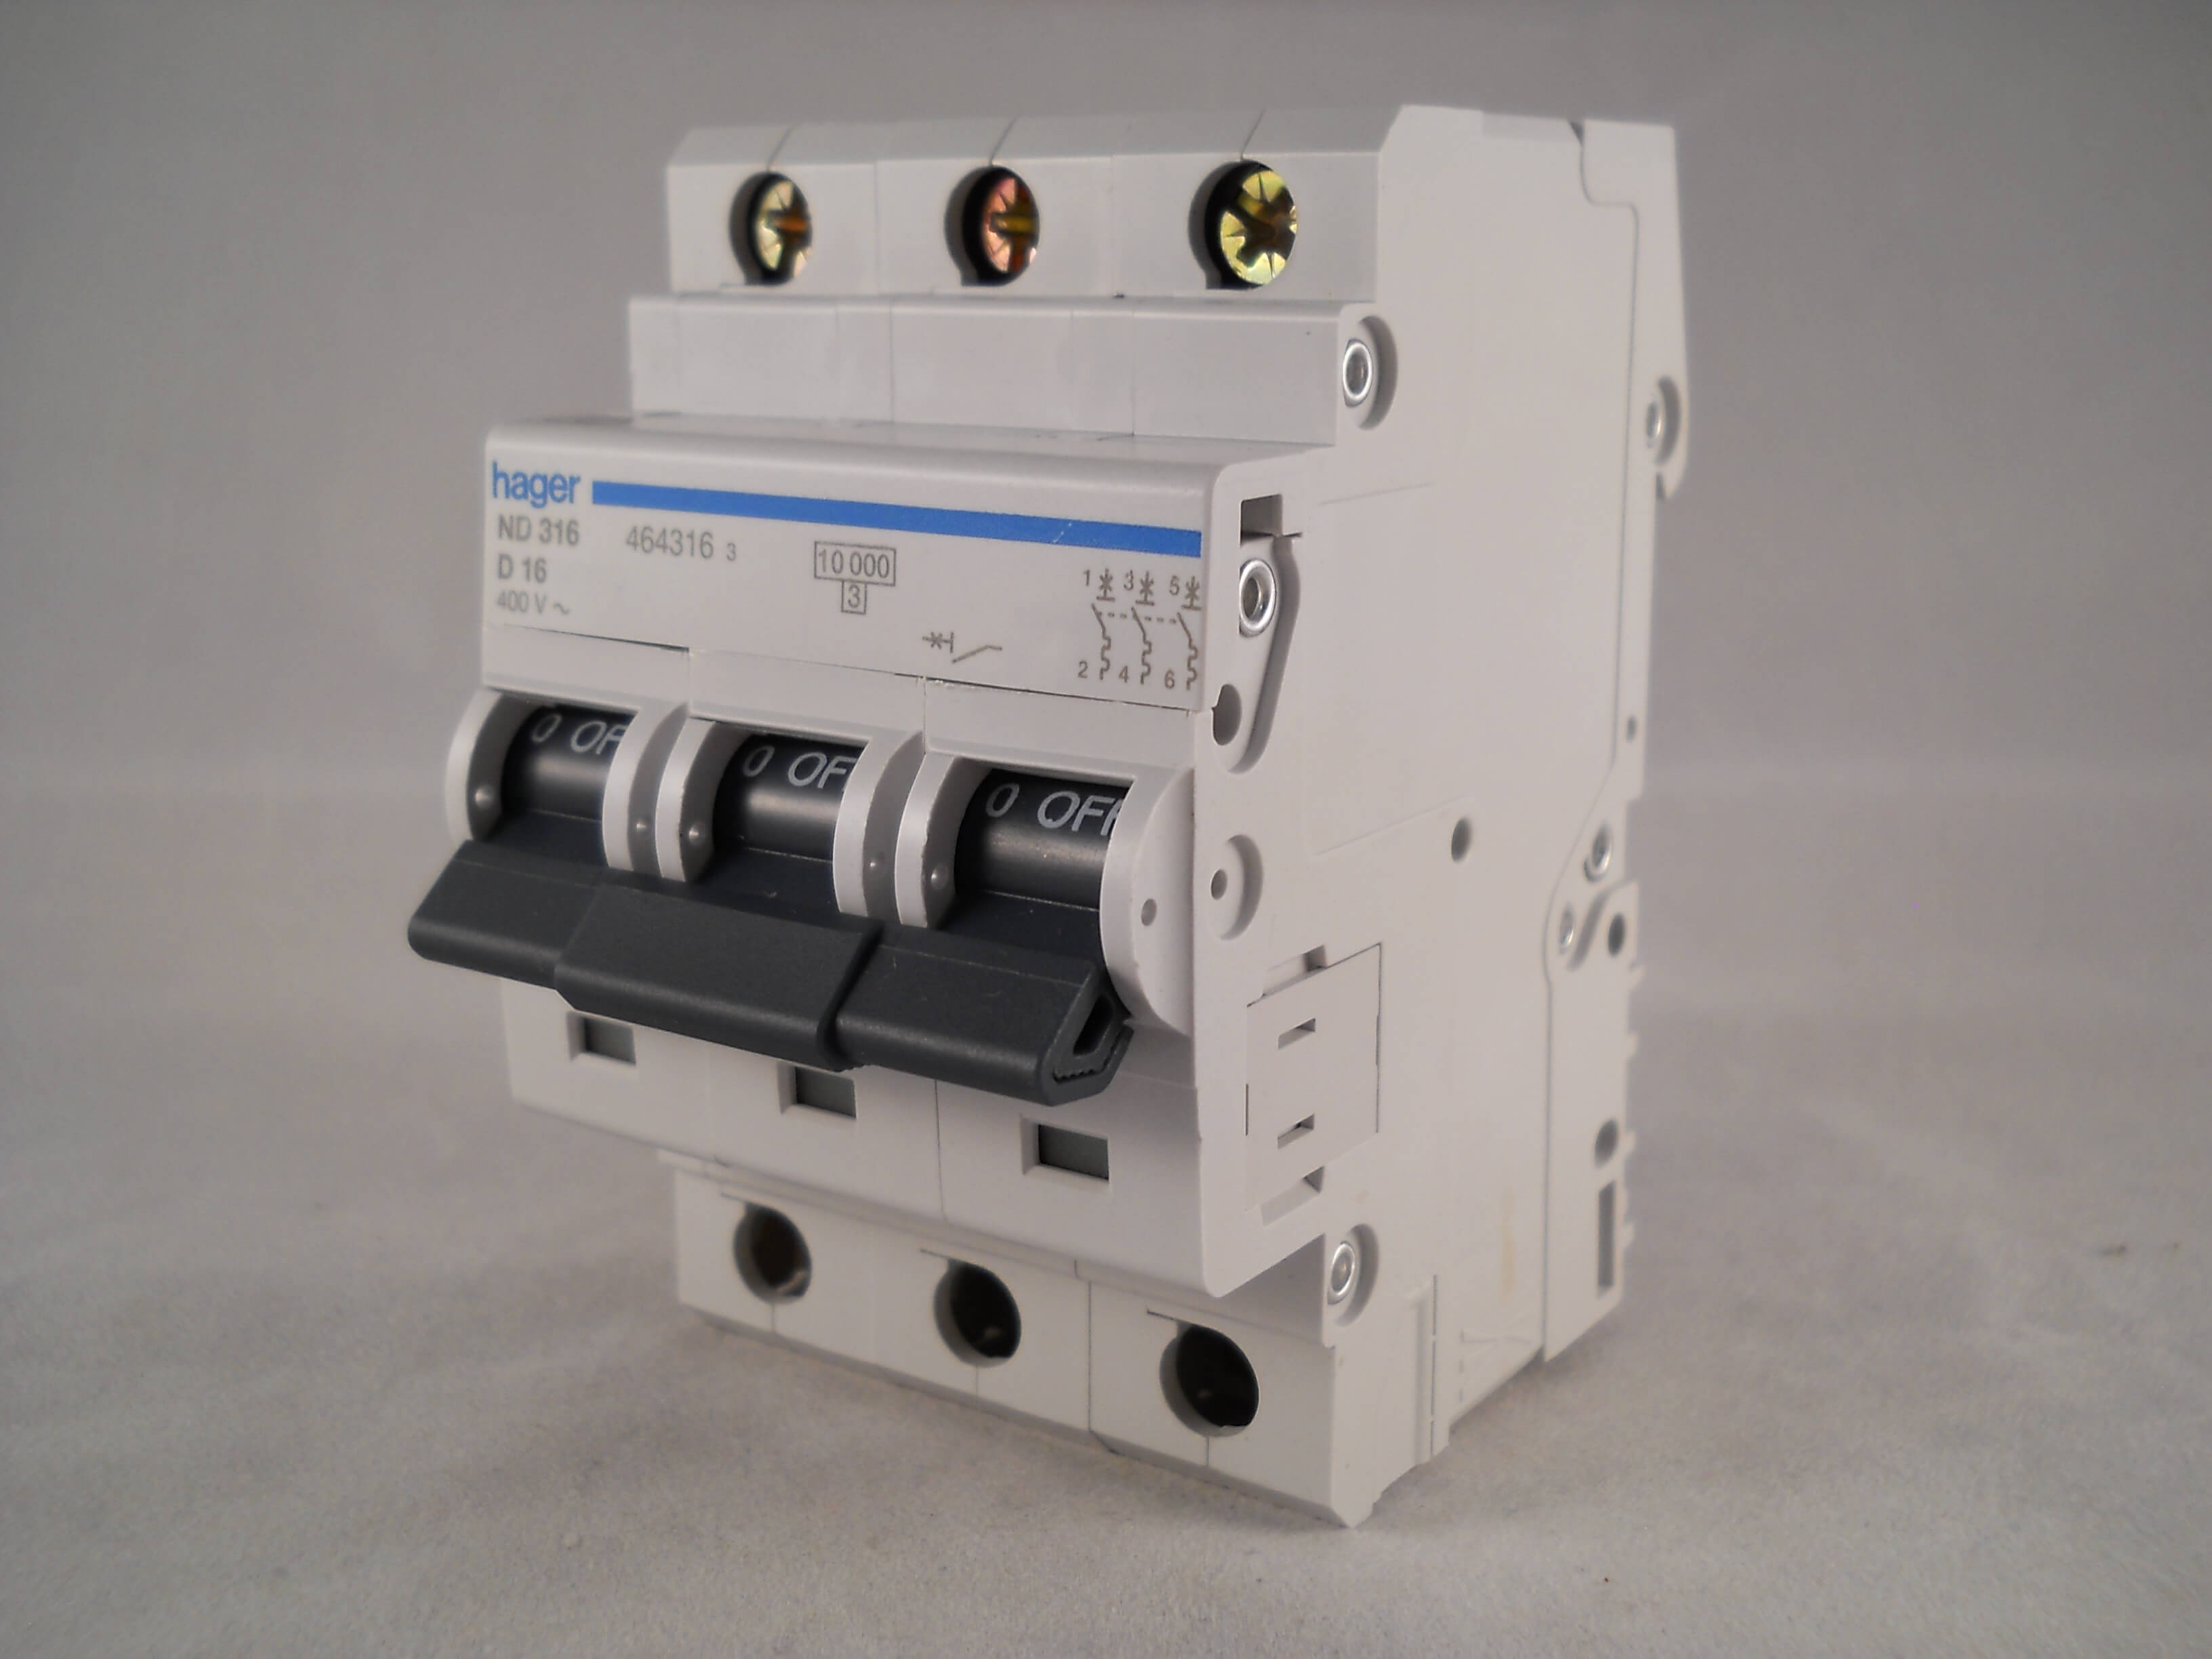 orbis crono timer day and week 230V 16A relay 100h Reserve model 1207 NEW!!!